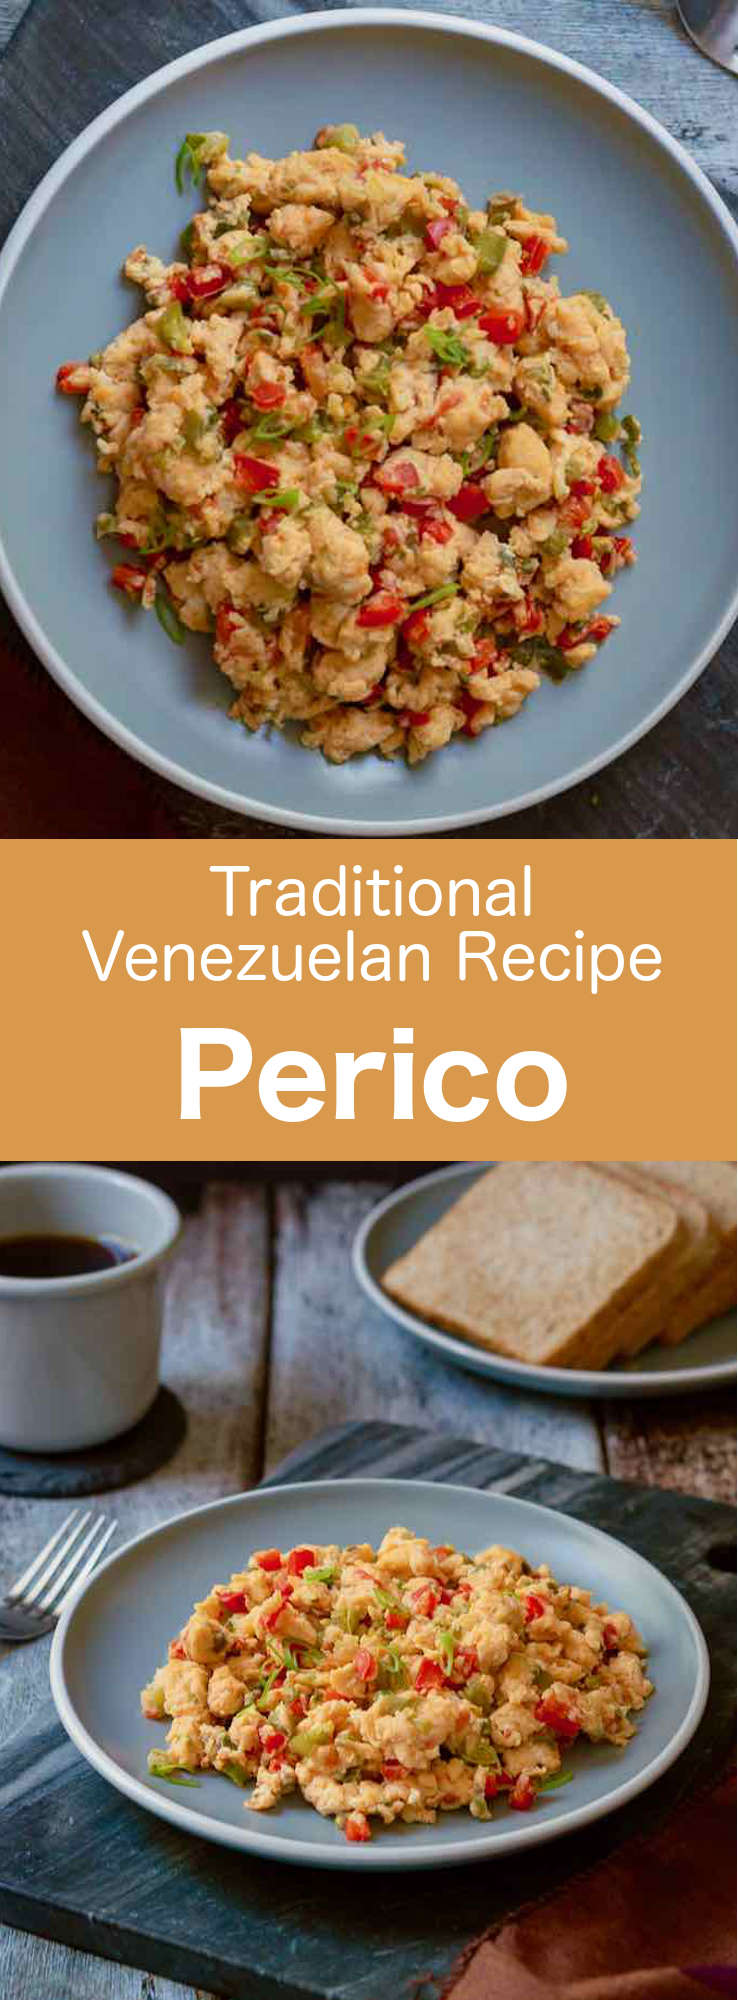 Perico is a popular South American styled scrambled eggs. It is a classical breakfast item that is popular both in Venezuela and Colombia. #Venezuela #Colombia #VenezuelanCuisine #ColombianCuisine #LatinAmerica #LatinAmericanCuisine #WorldCuisine #196flavors